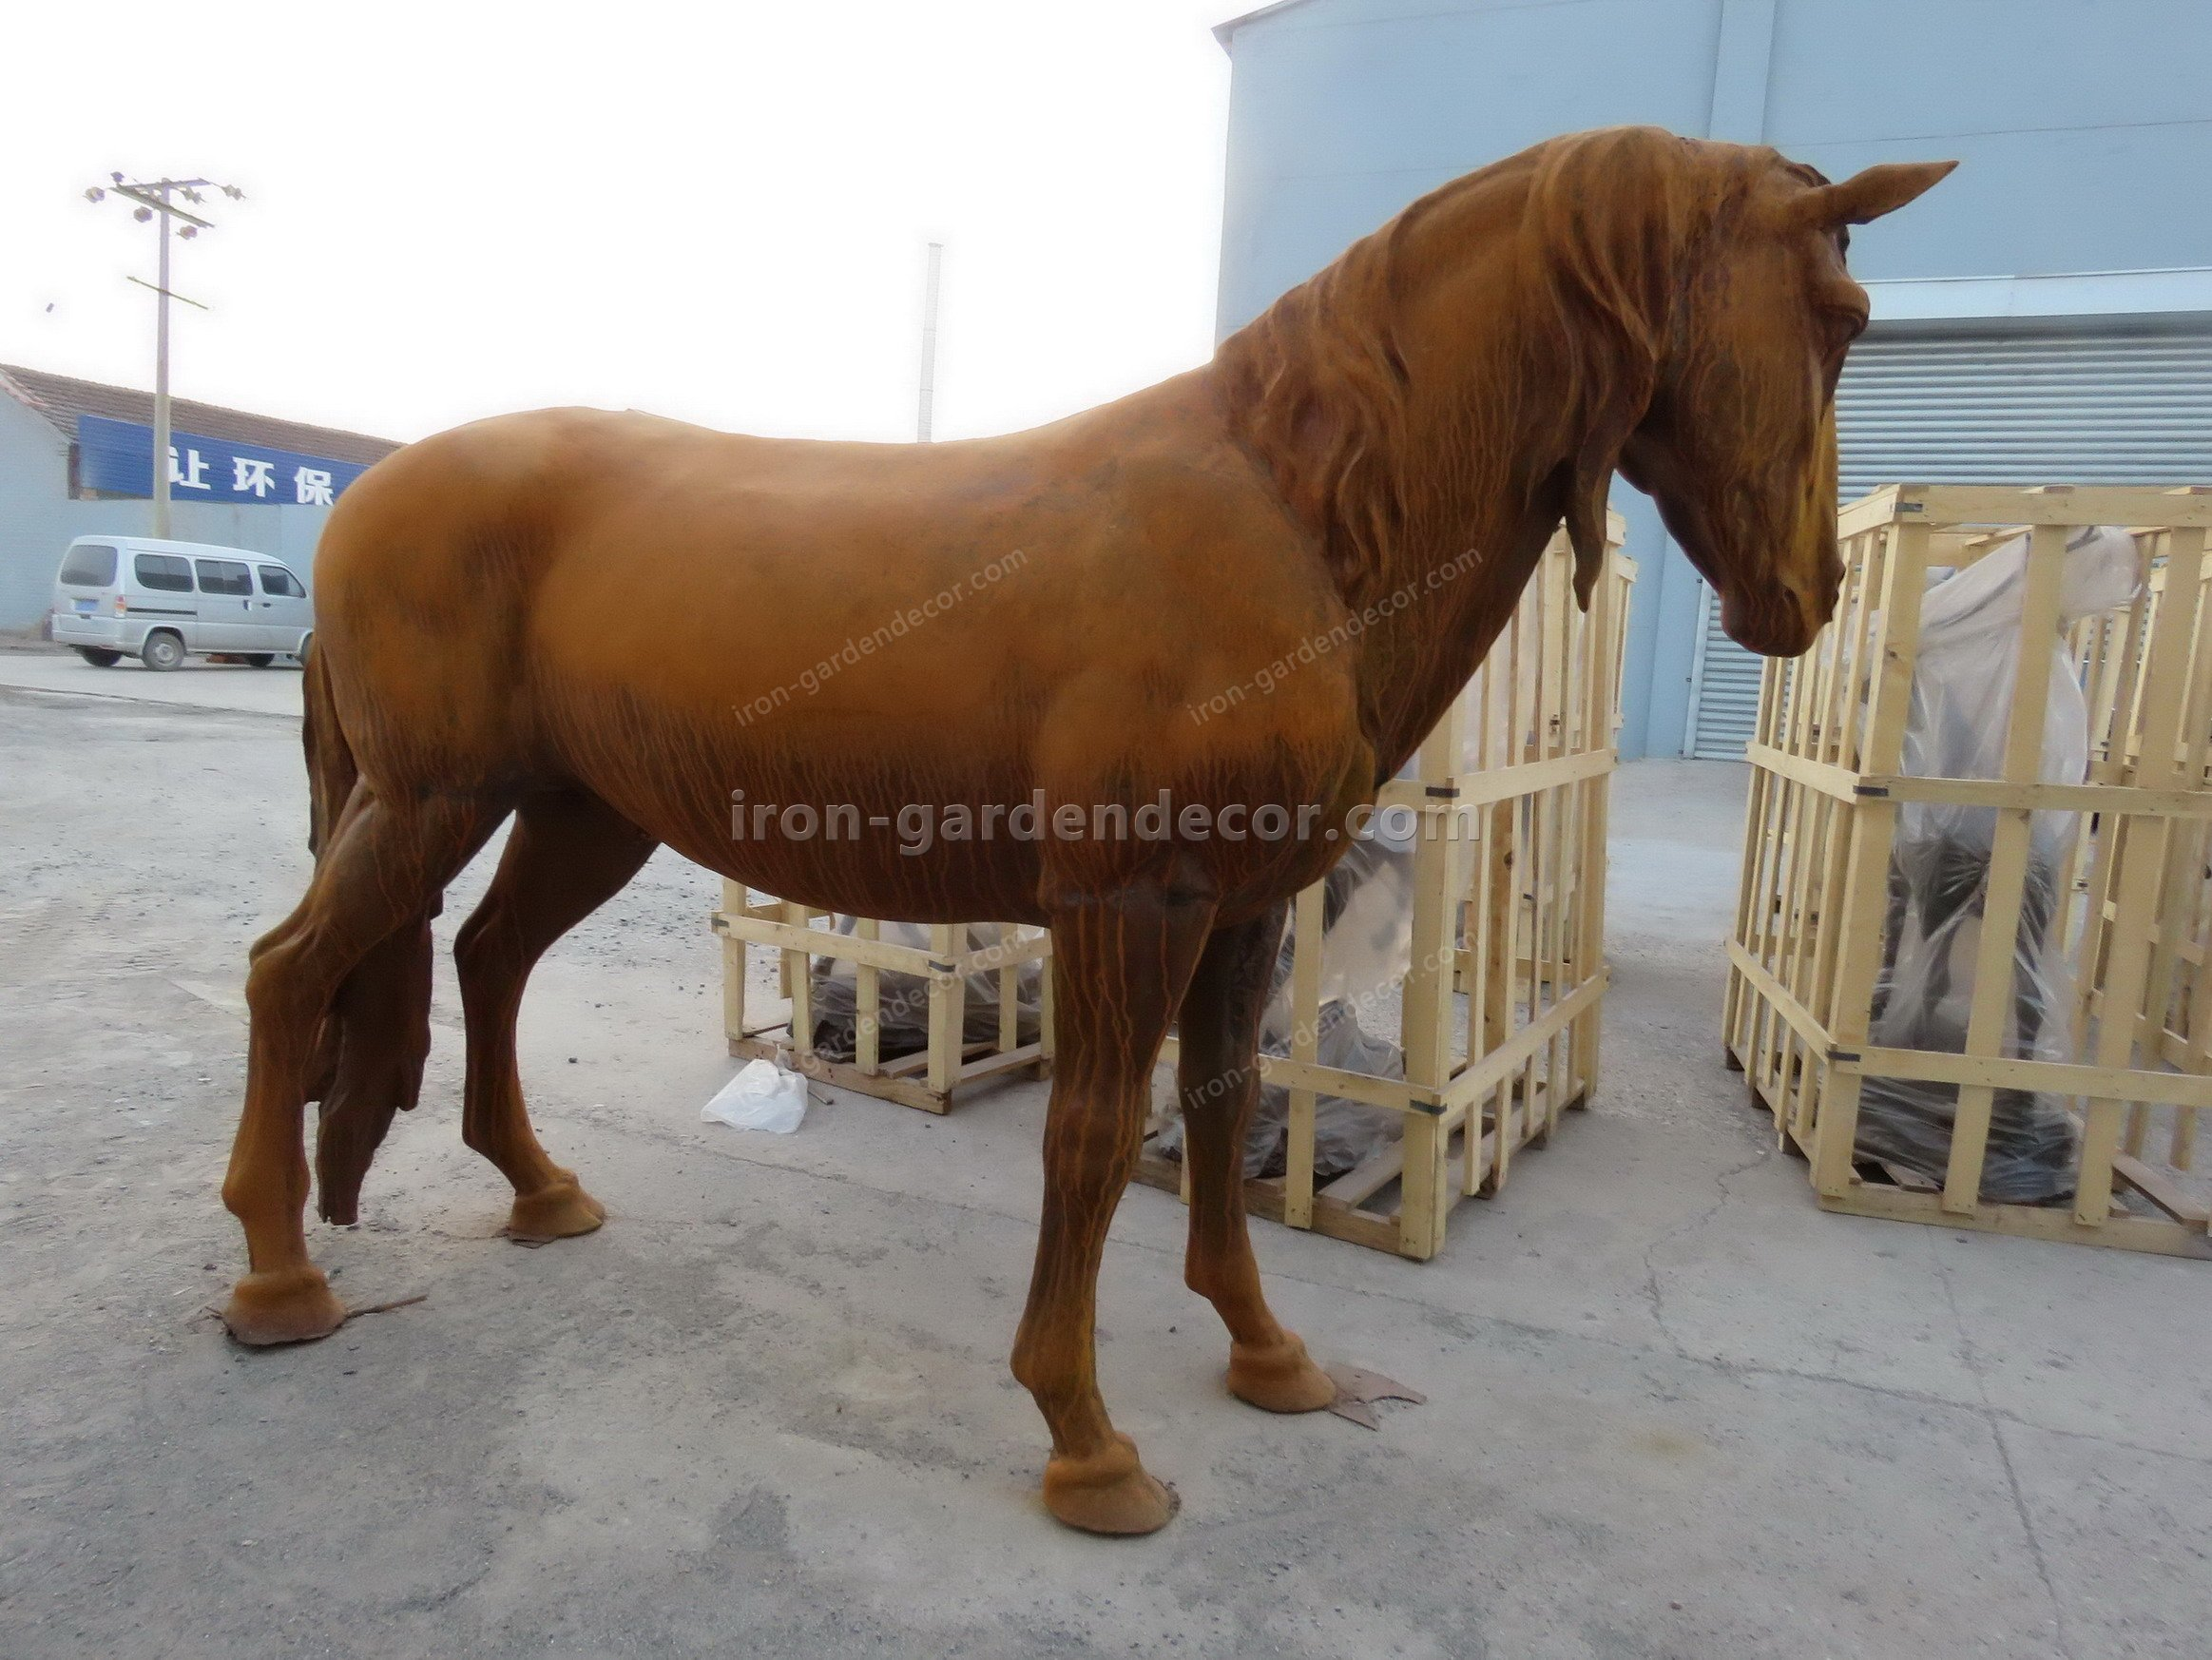 normal size cast iron animal of horse garden animal, large horse animal-SS6027 (9)